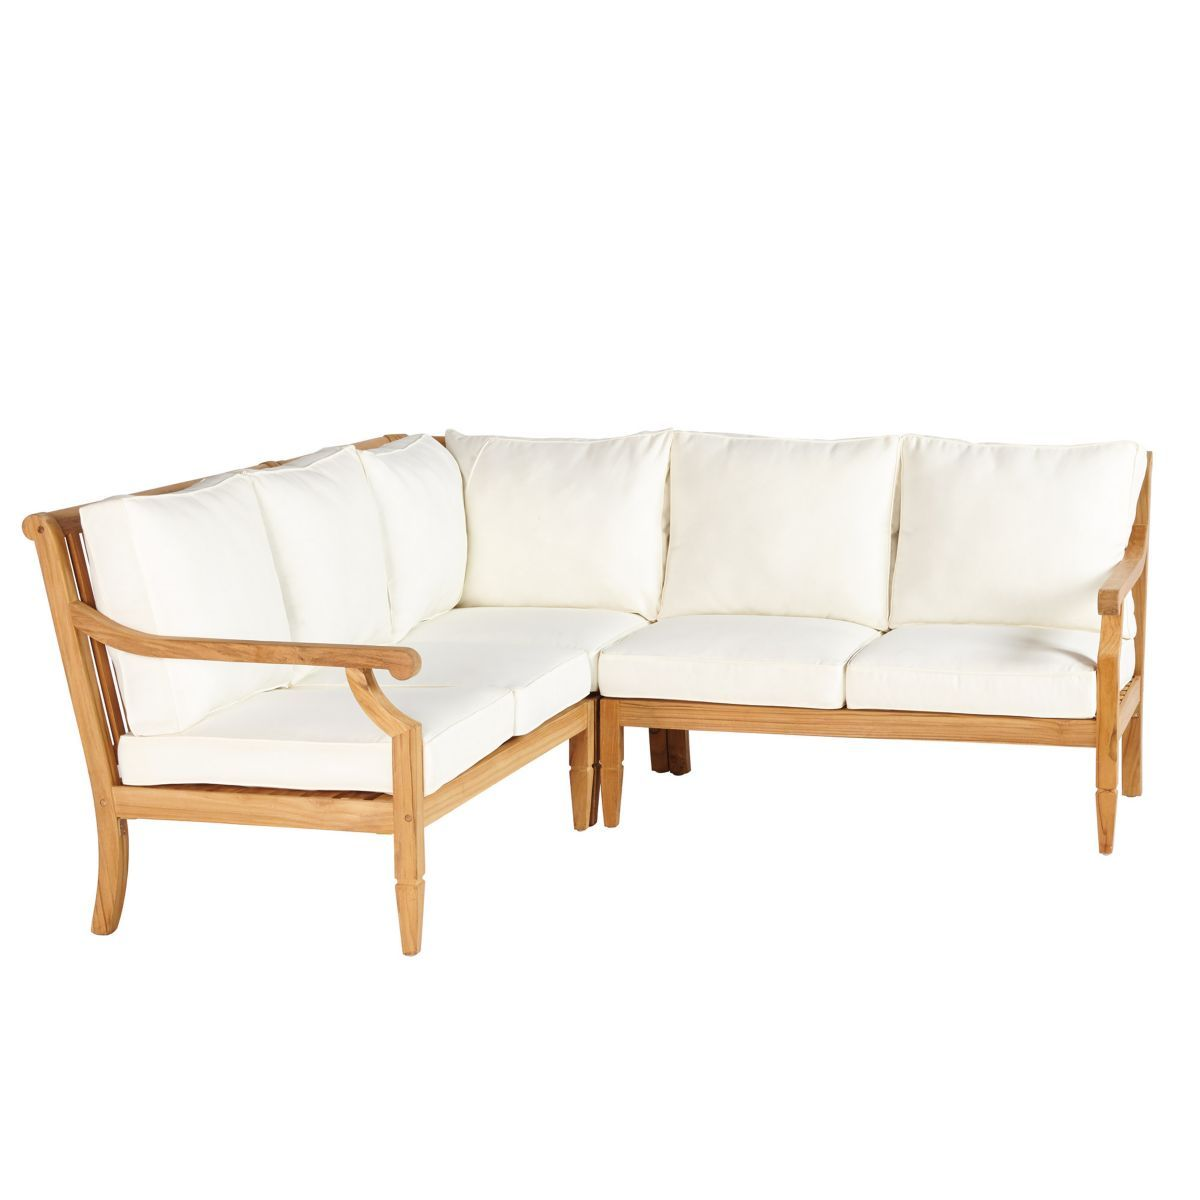 Patio Furniture Repair Madison Wi: Madison Teak 3-Piece Sectional